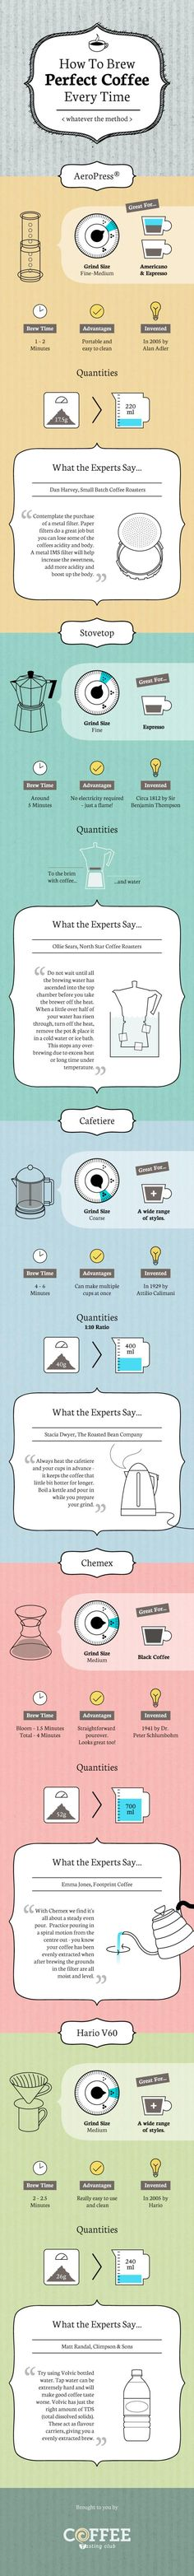 How To Brew Perfect Coffee Every Time #Infographic